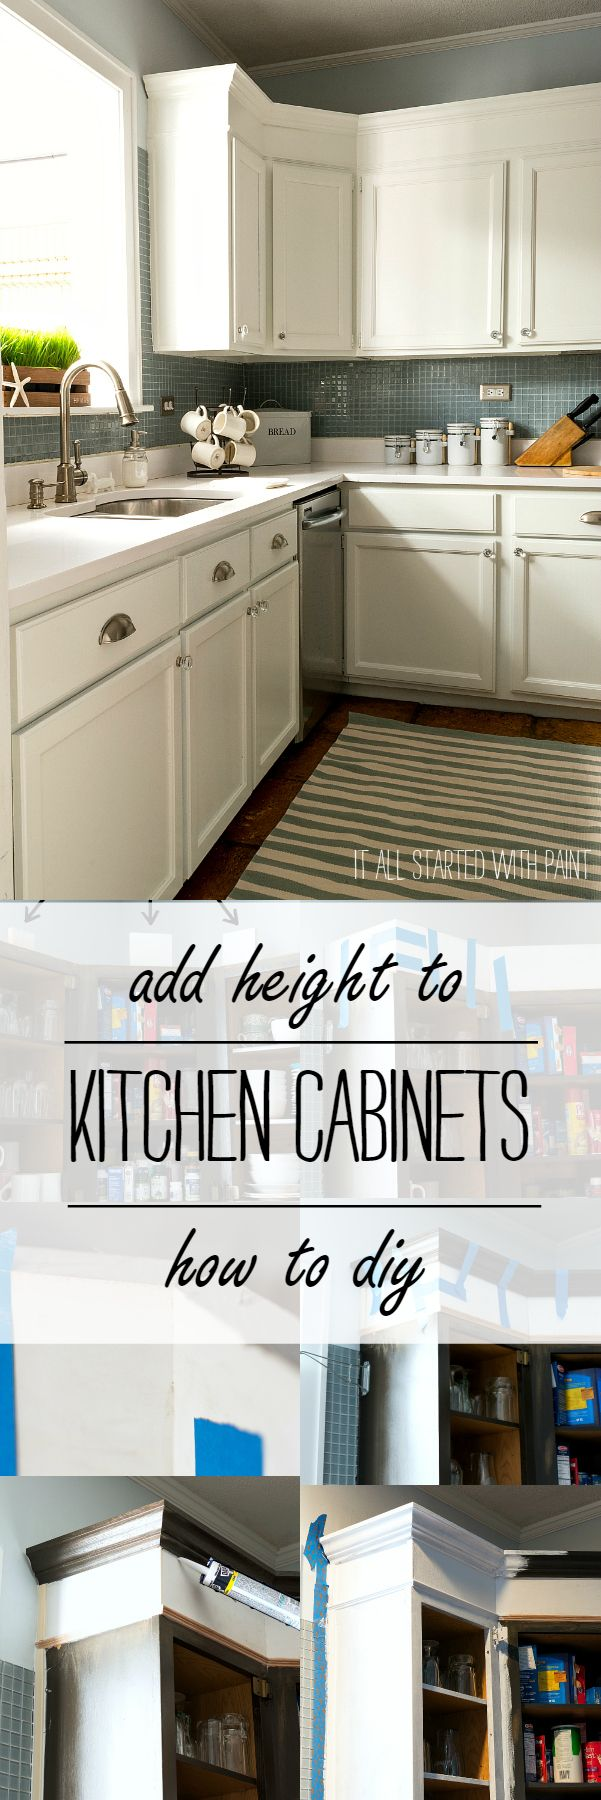 how to add height to kitchen cabinets how to add height to kitchen cabinets power tools tops 16767